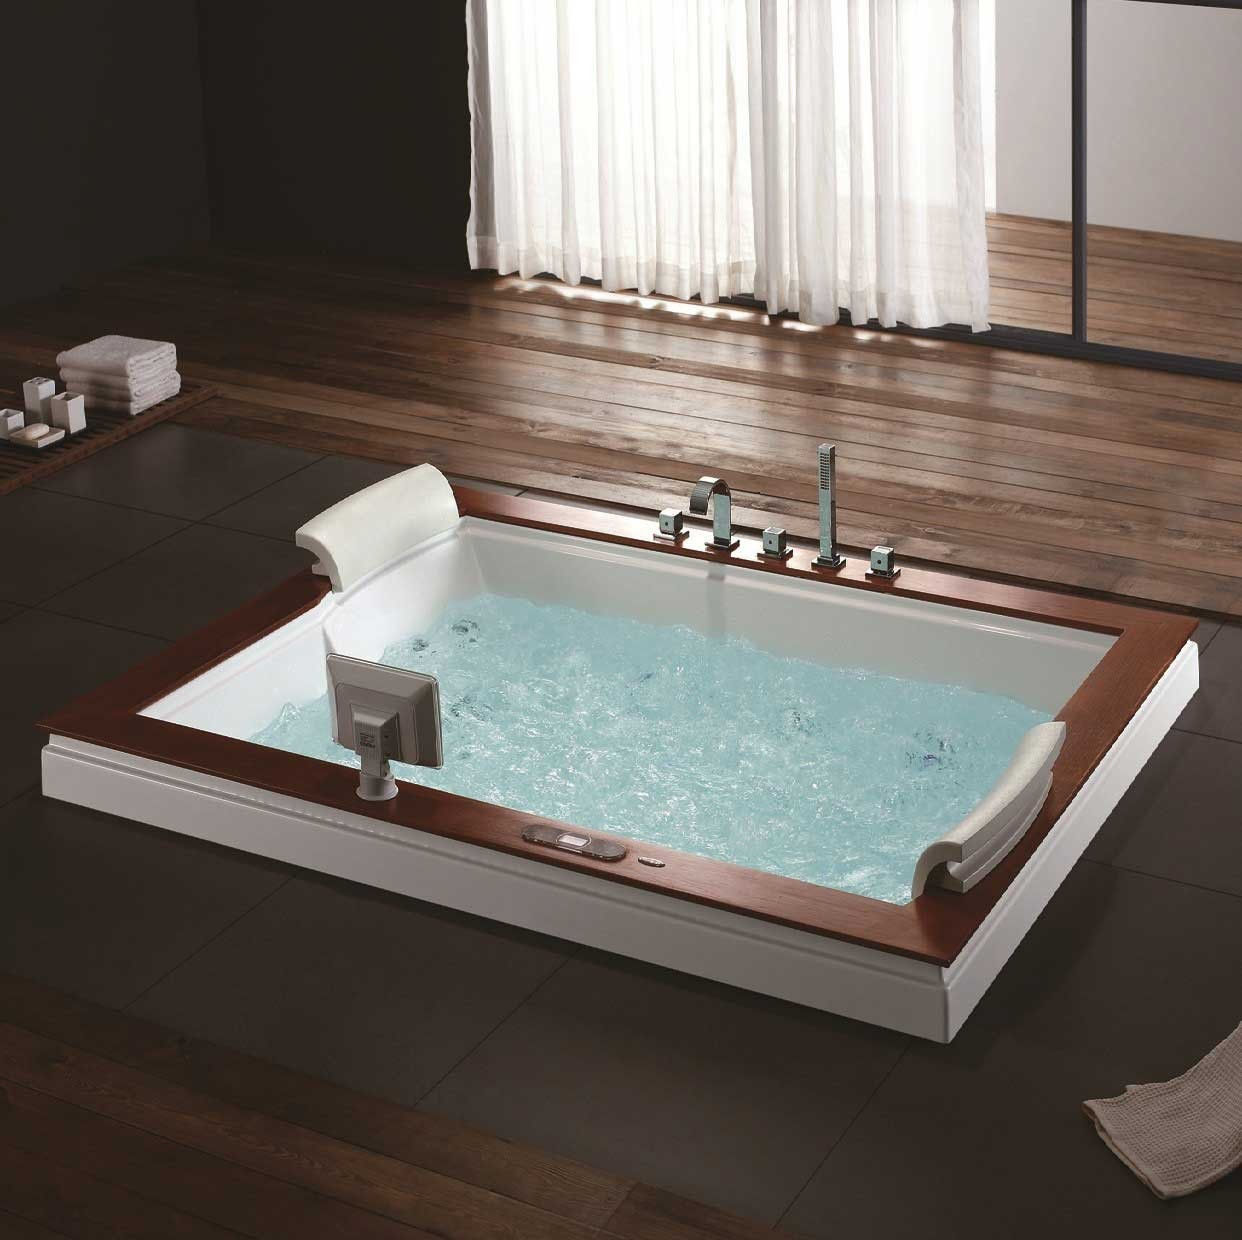 whirlpool bathtub. Burlington Luxury Whirlpool Tub